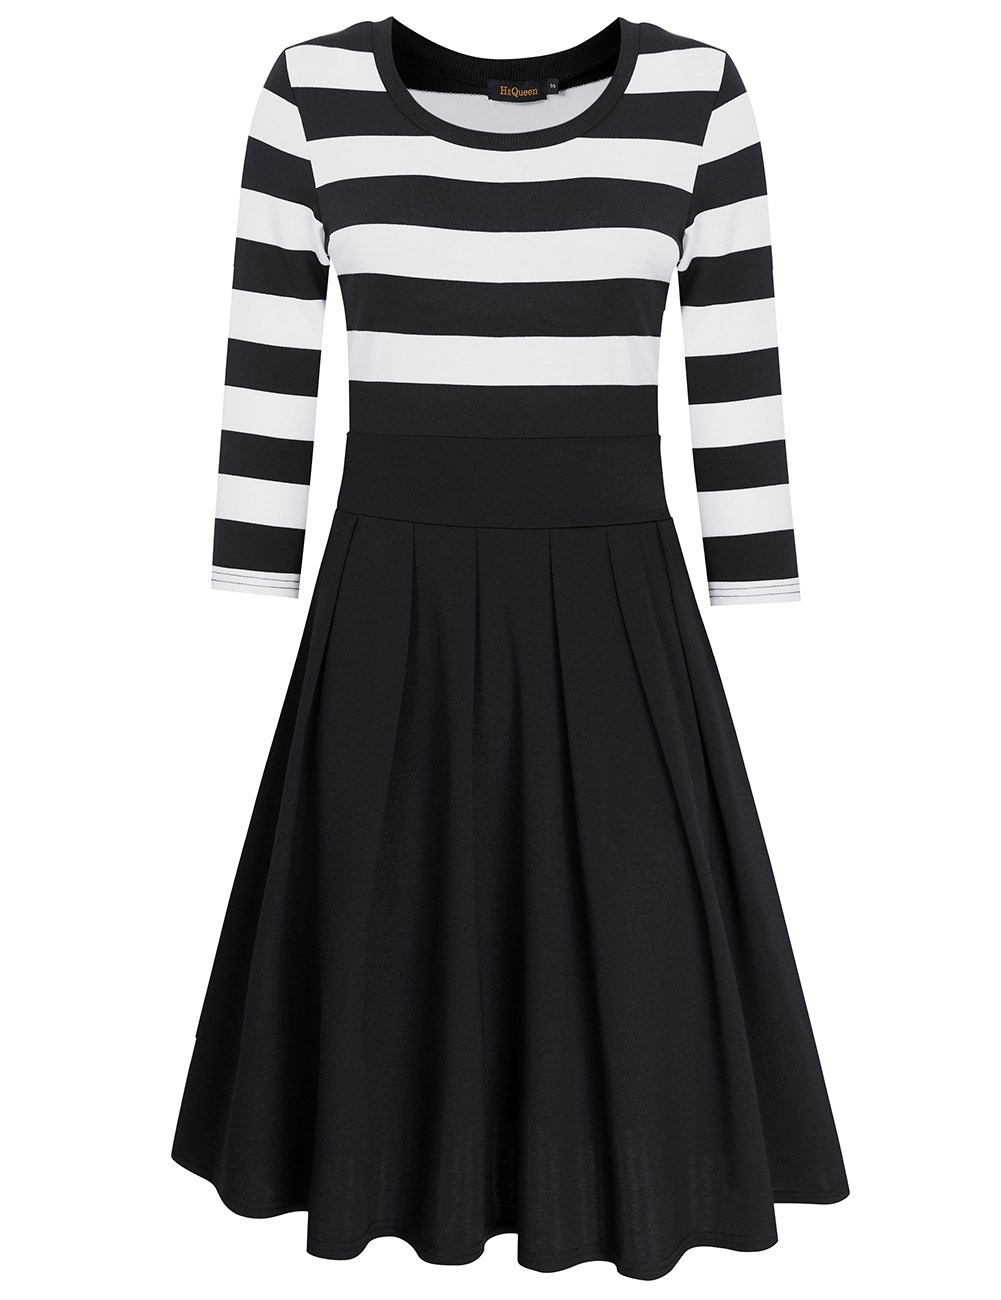 HiQueen Women Casual Scoop Neck 3/4 Sleeve A-Line Swing Dress Stripe Modest Dresses Black_M